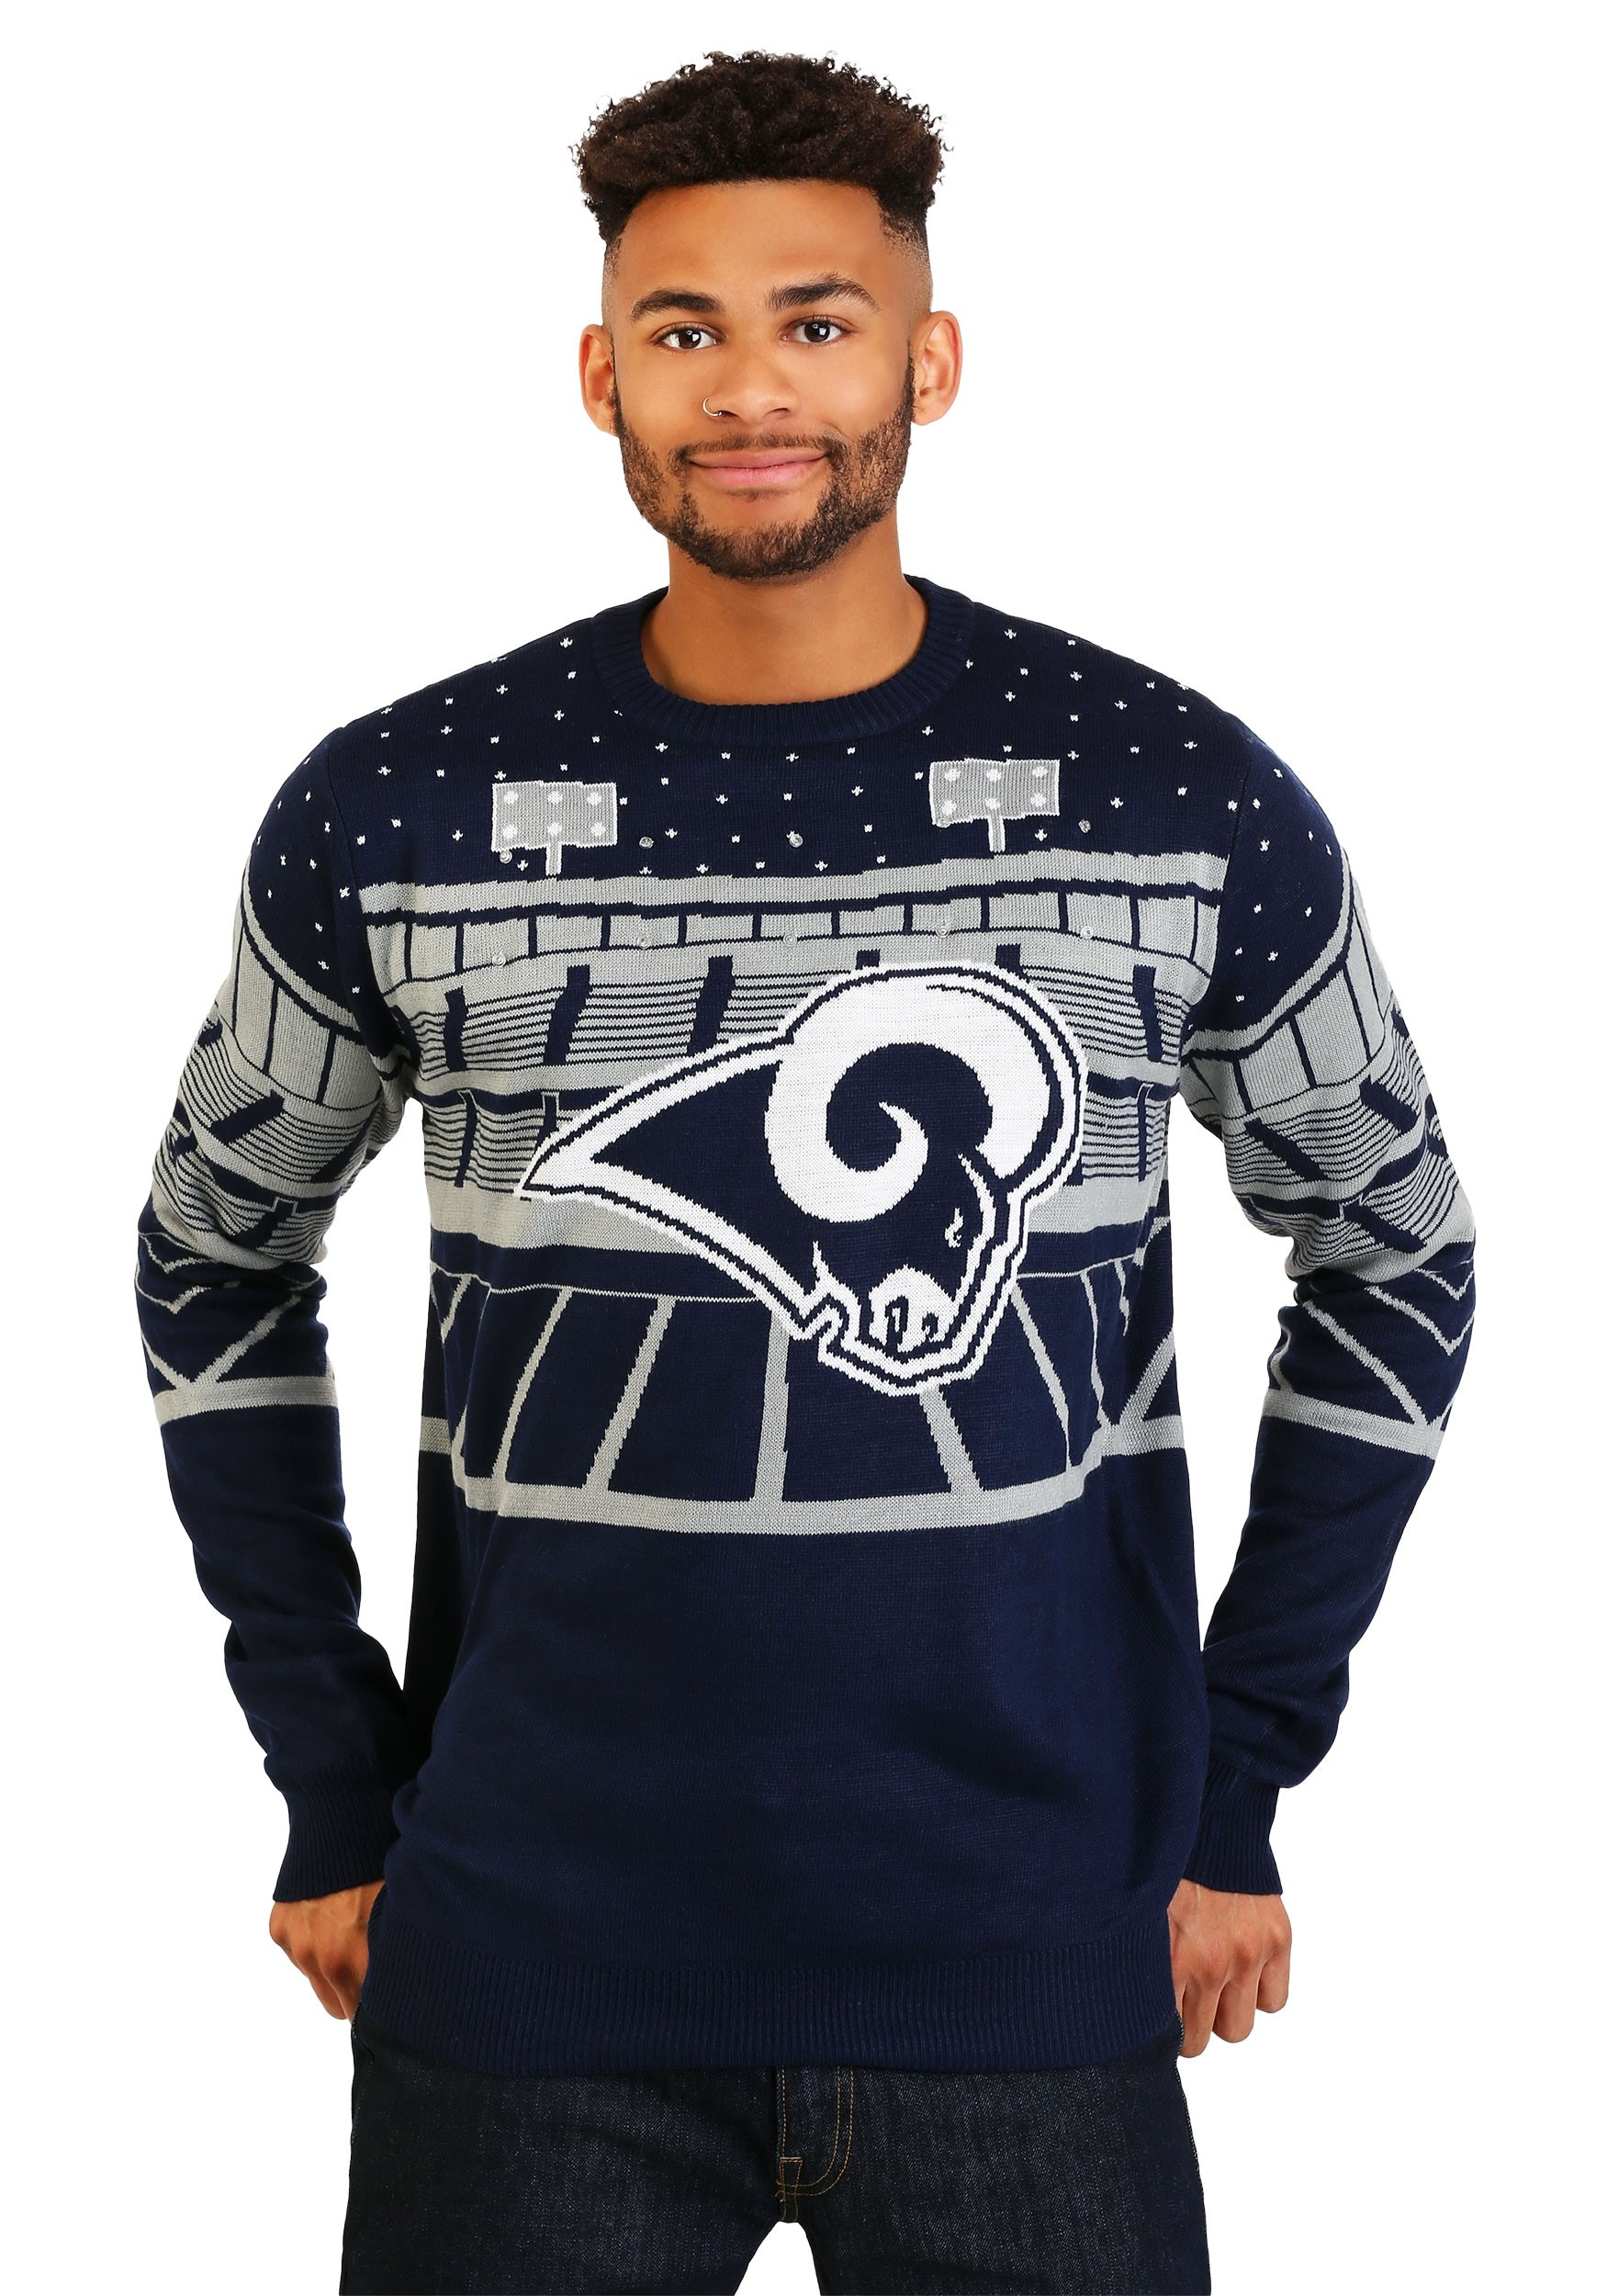 Nfl Los Angeles Rams Light Up Bluetooth Ugly Christmas Sweater